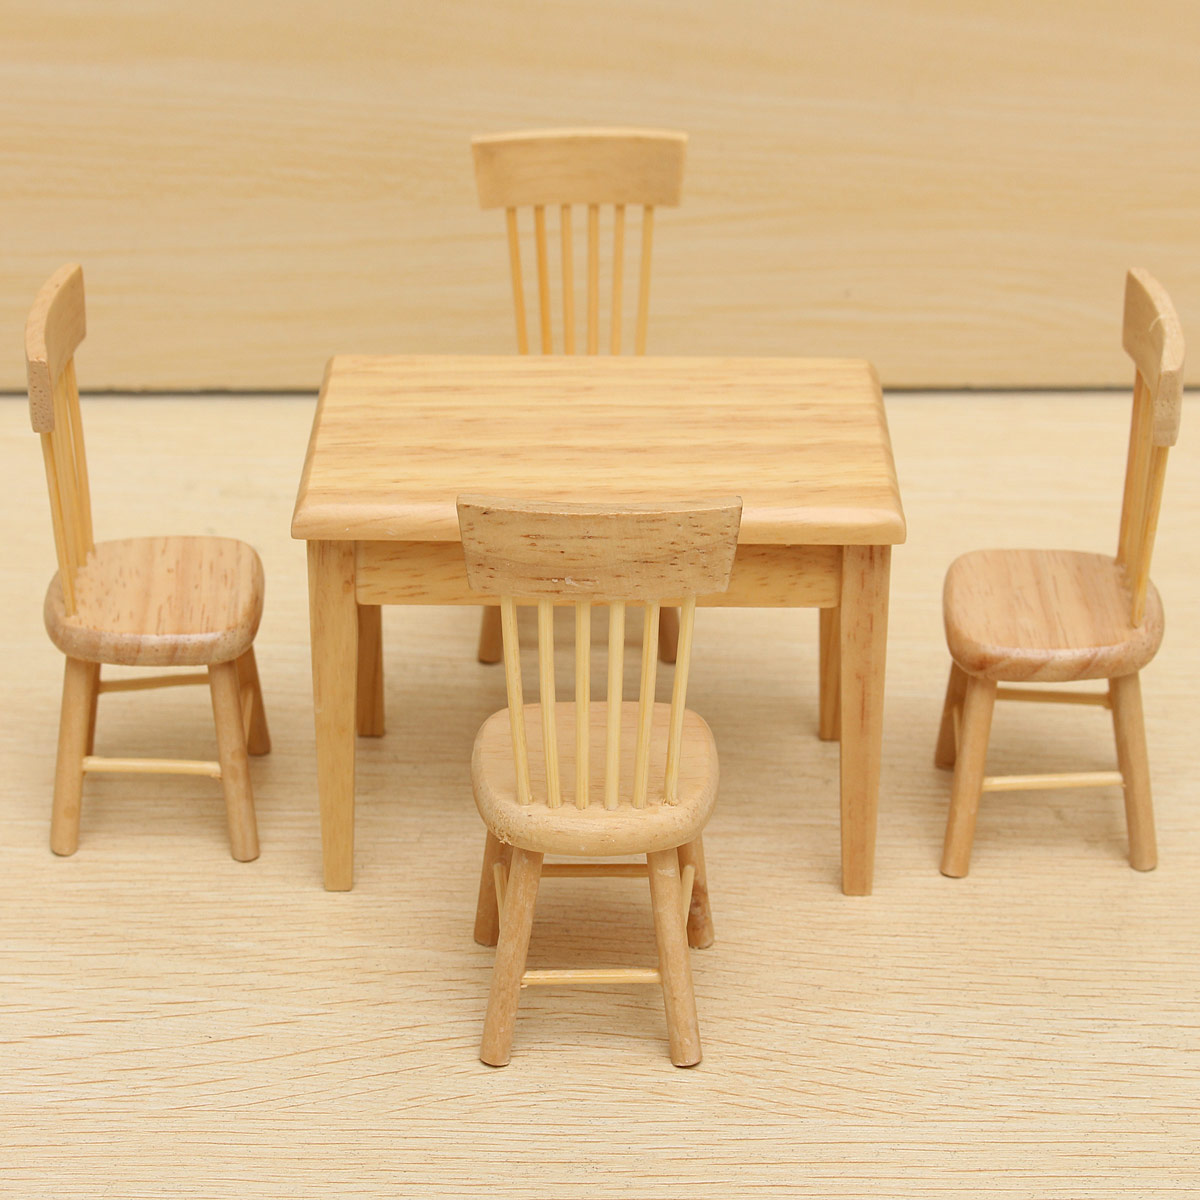 1 12 Dollhouse Mini Furniture Wooden Dining Room Table 4